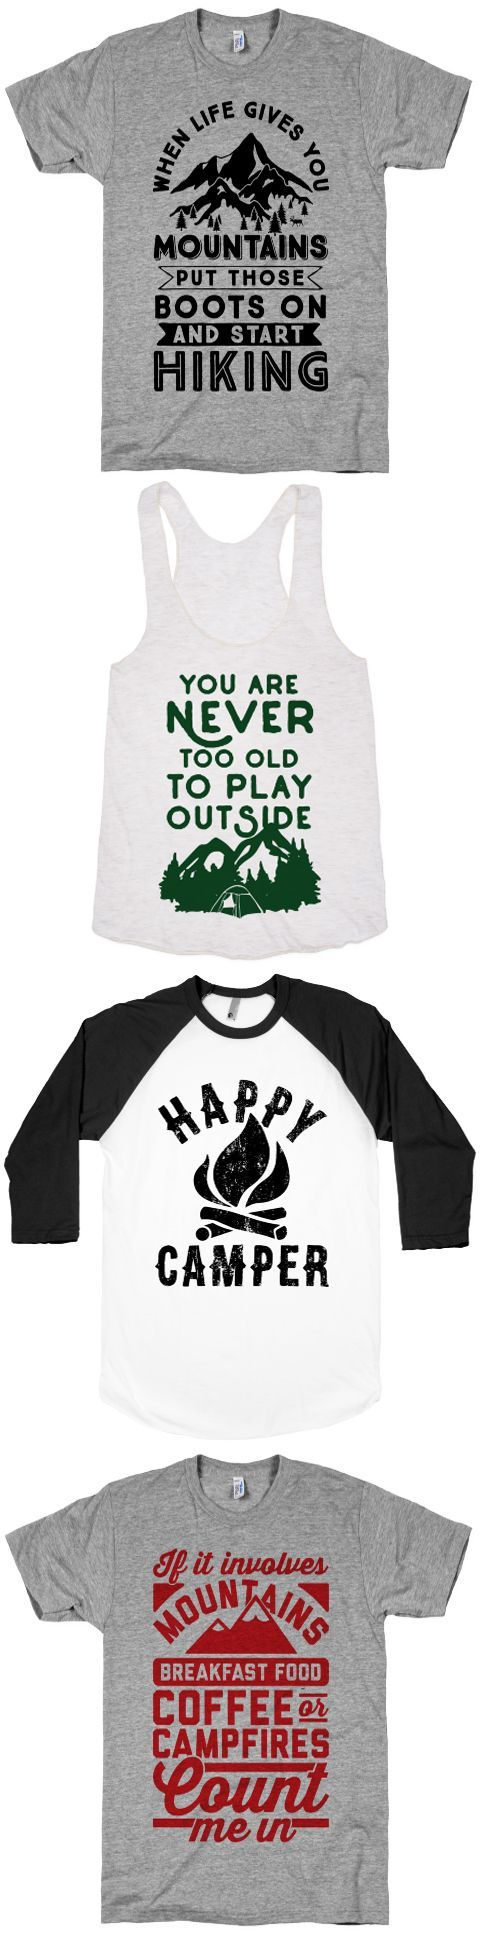 Enjoy the great outdoors with these awesome designs. Hiking, Camping and more! Free Shipping on U.S. orders over $50.00.: